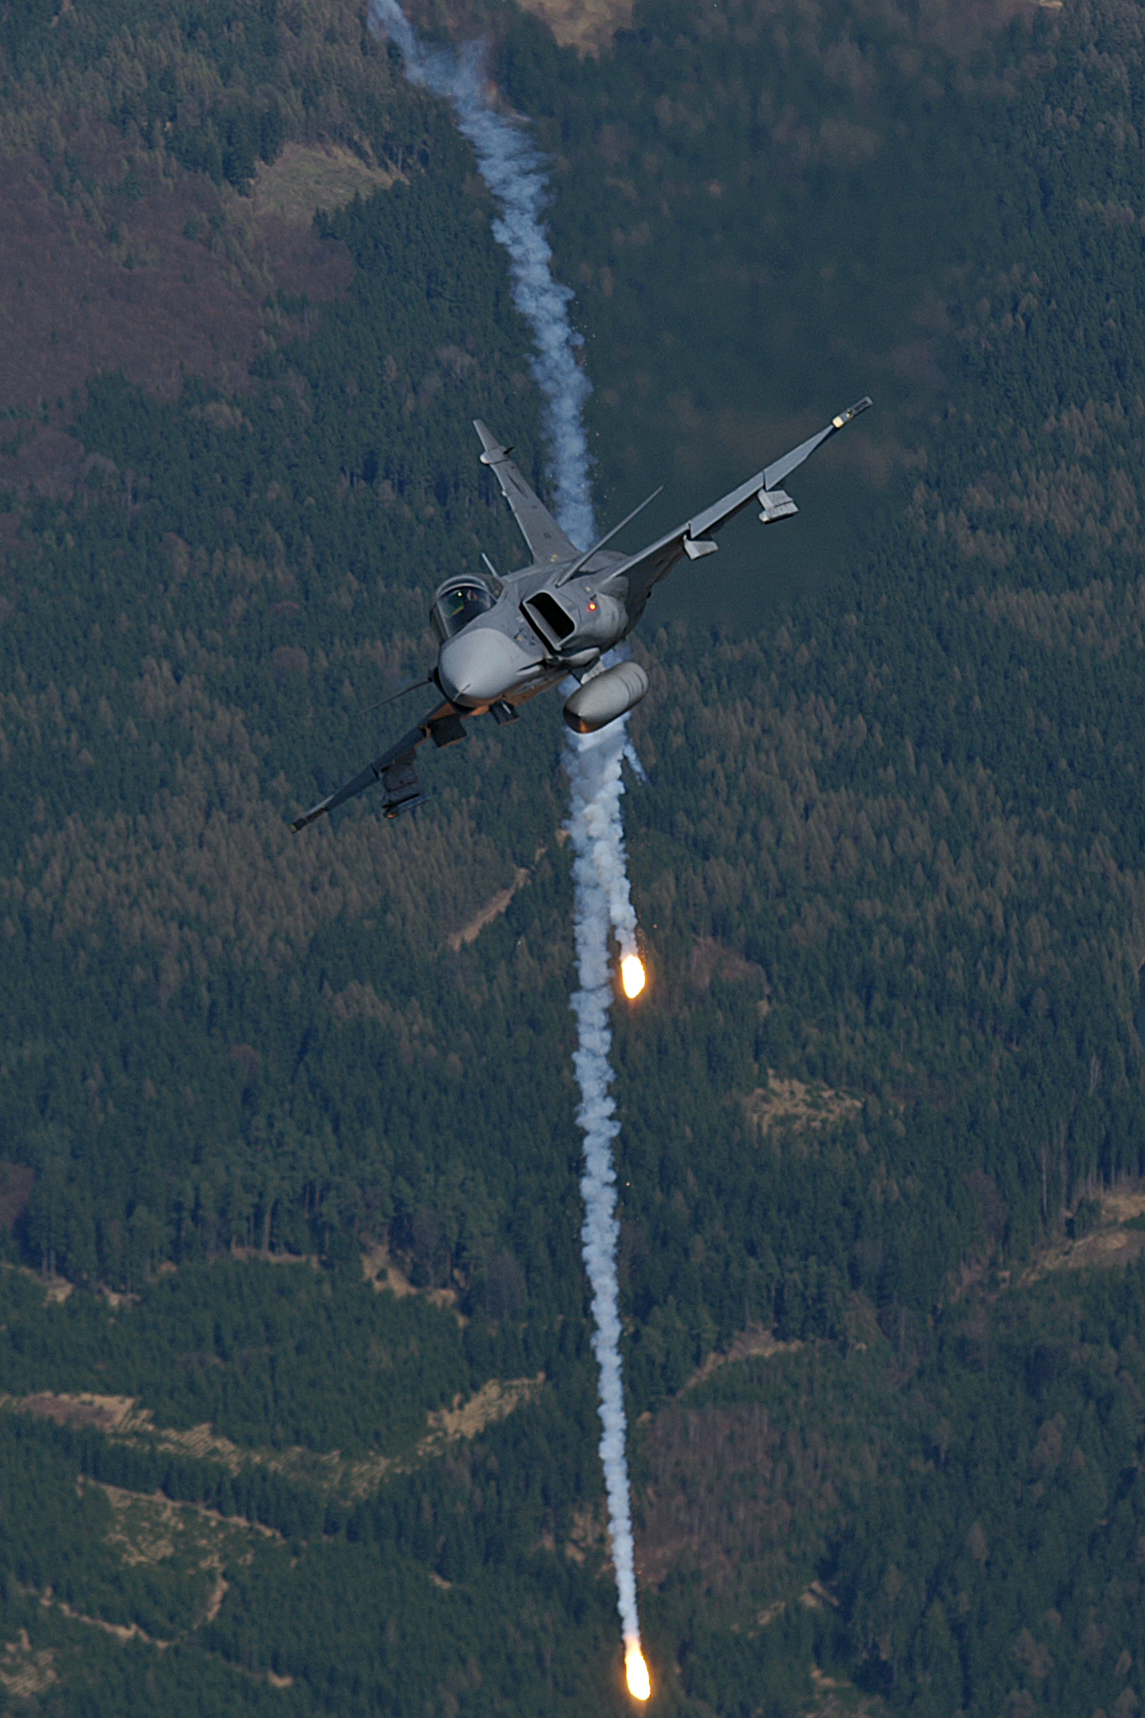 Head on view of fighter jet banking right while releasing flares against a background of green woodland.